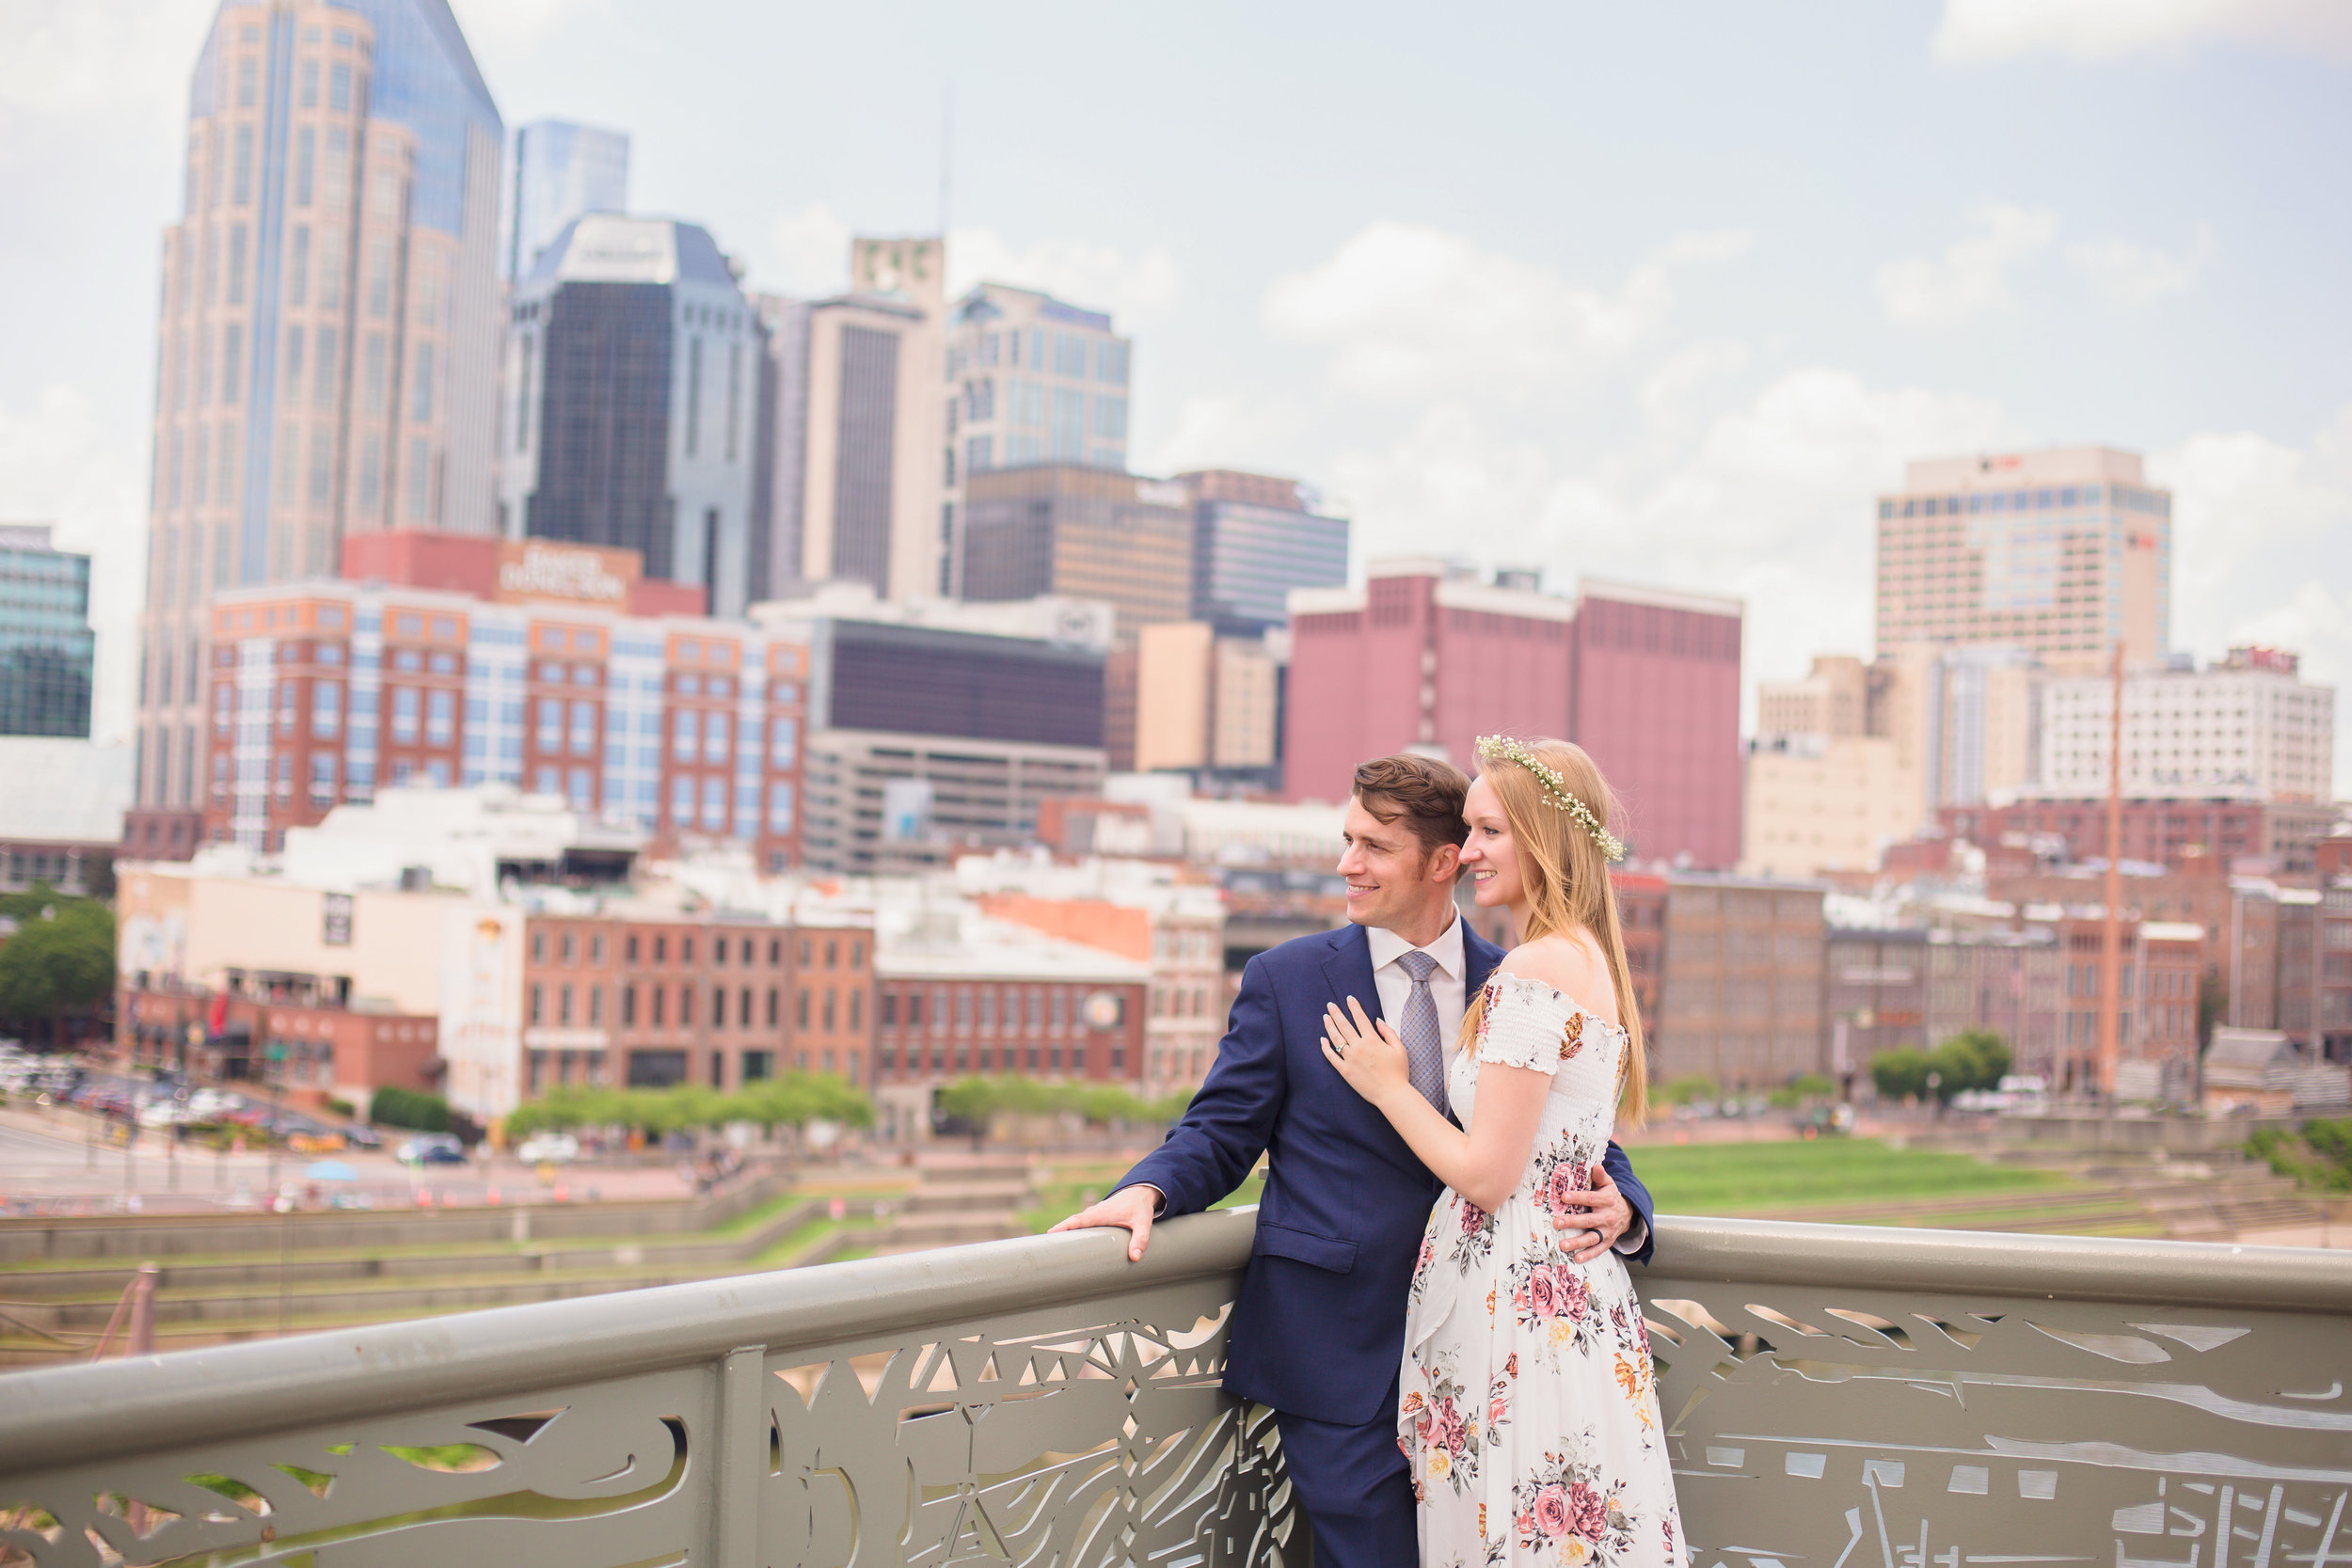 Armstrong Nashville Elopement - Nashville Wedding Photographer - Chelsea Meadows Photography (79).jpg